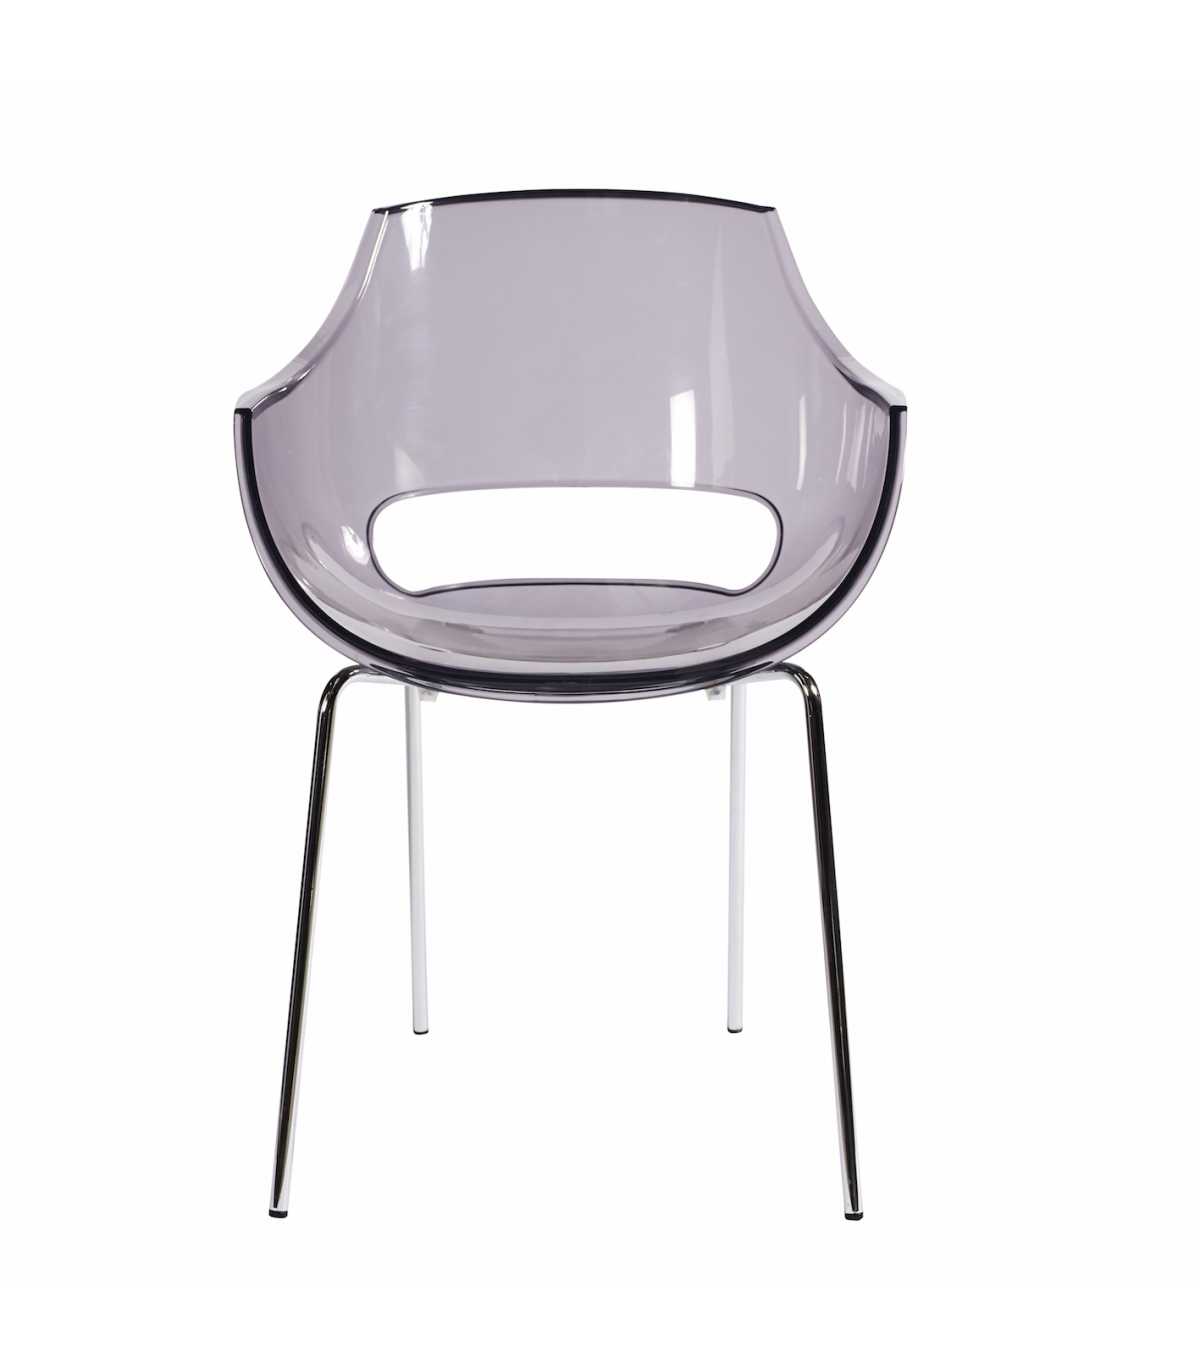 Chaise en plastique transparent 28 images chaise for Chaise en plastique